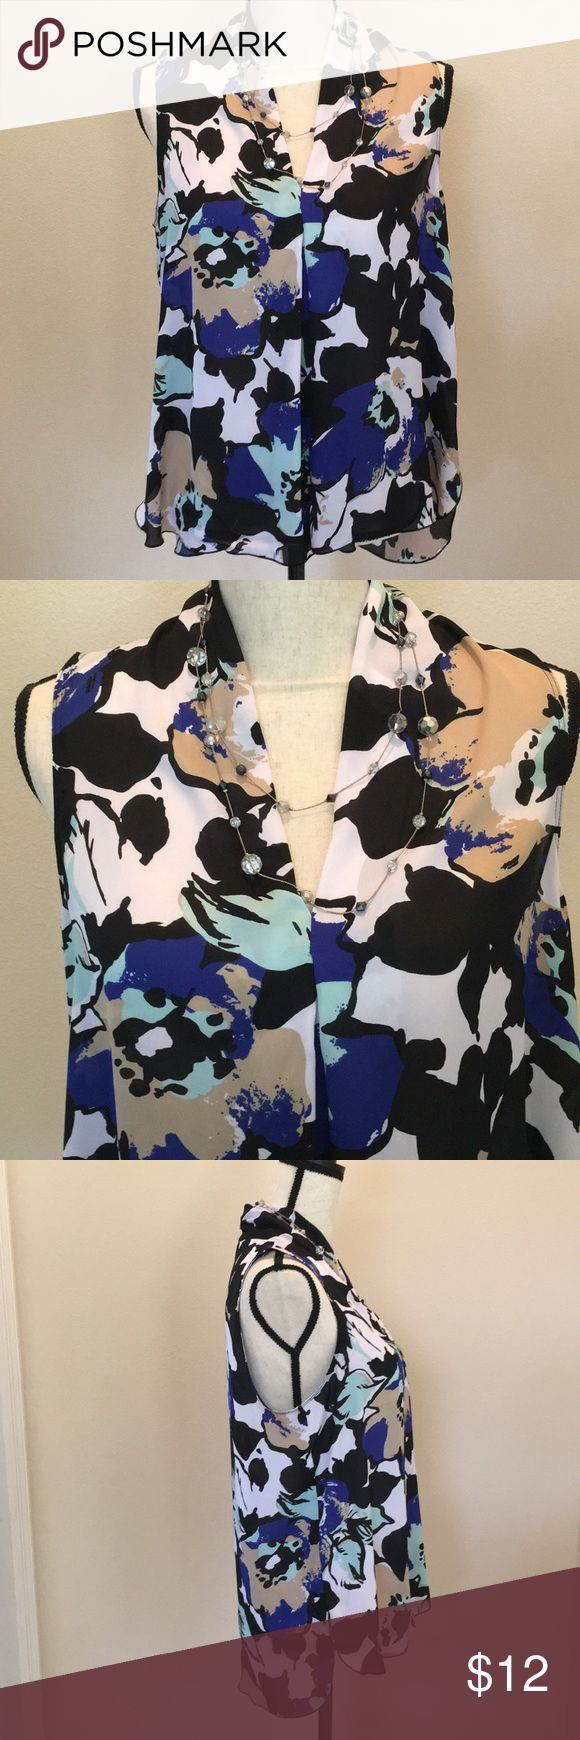 Liz Claiborne top Beautiful sleeveless Liz Claiborne hi lo top. Offers Welcome! Buy 2 or more items in closet and save 10%! Liz Claiborne Tops Blouses